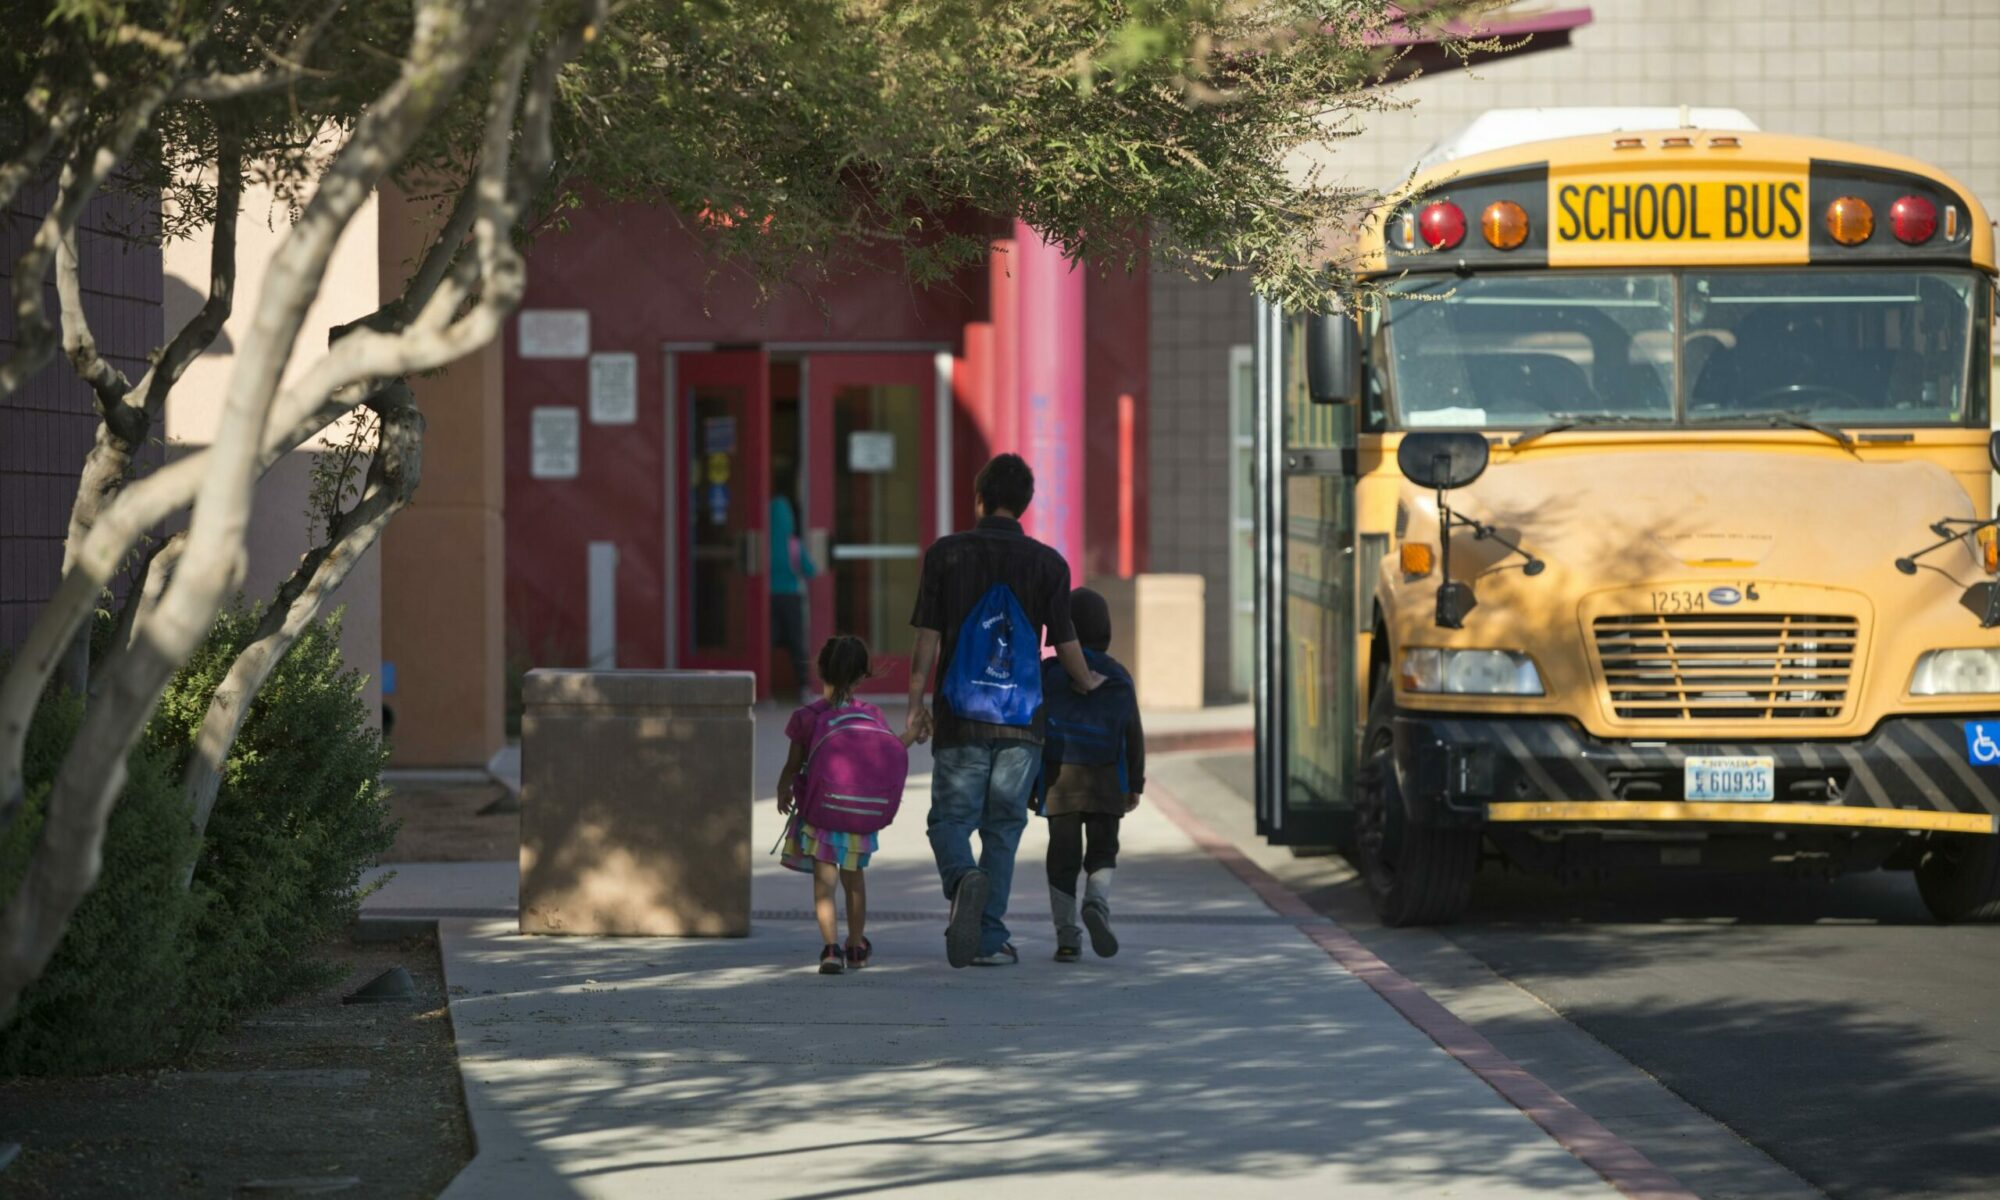 Students walk into J.E. Manch Elementary School in Las Vegas